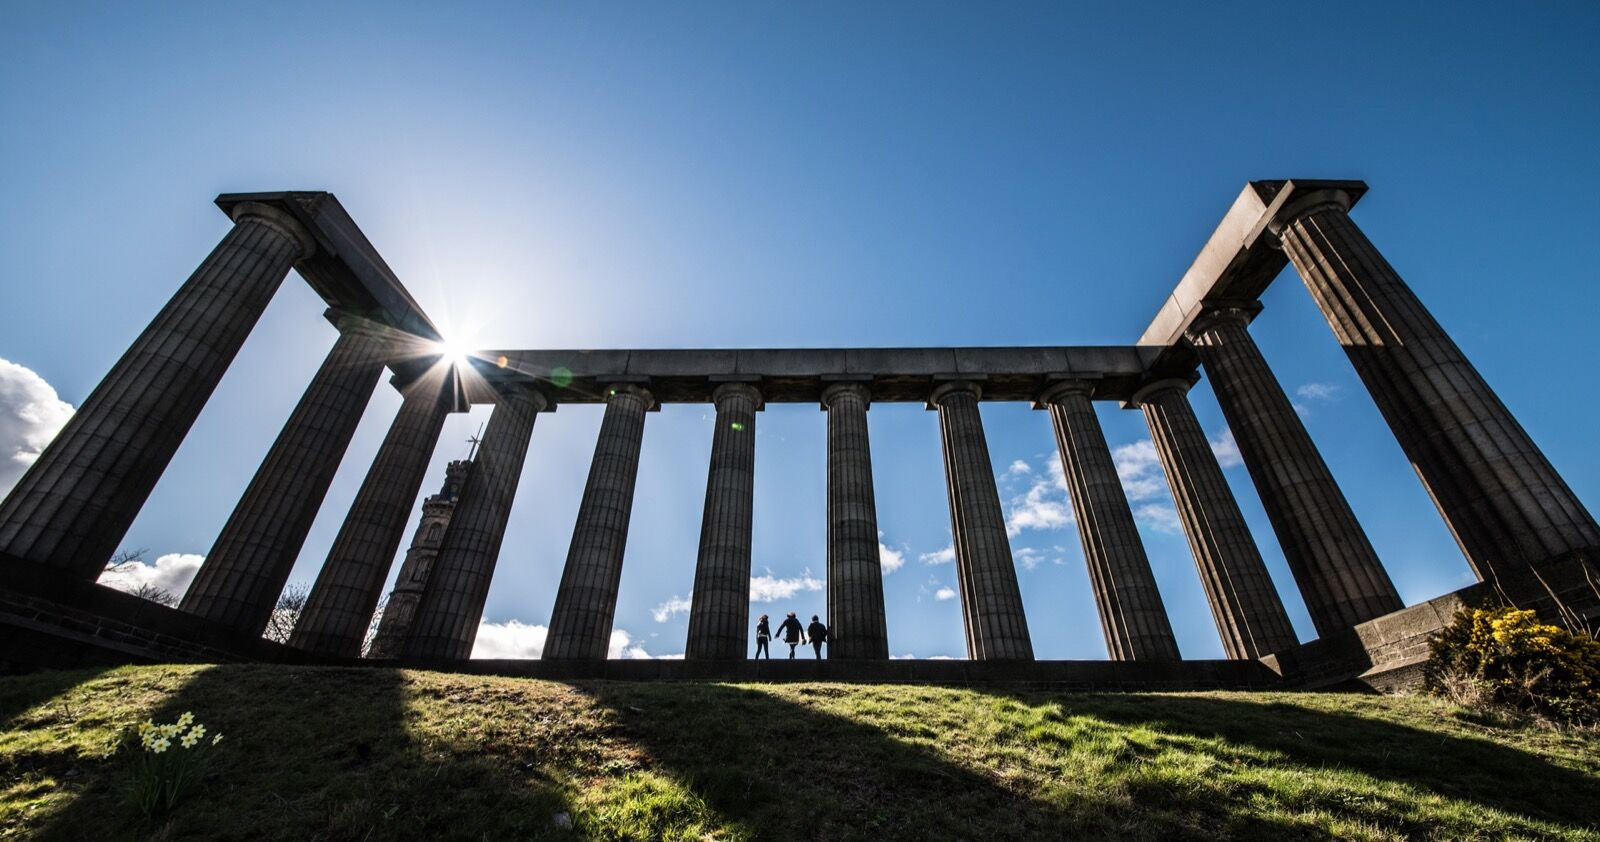 The National Monument Edinburgh